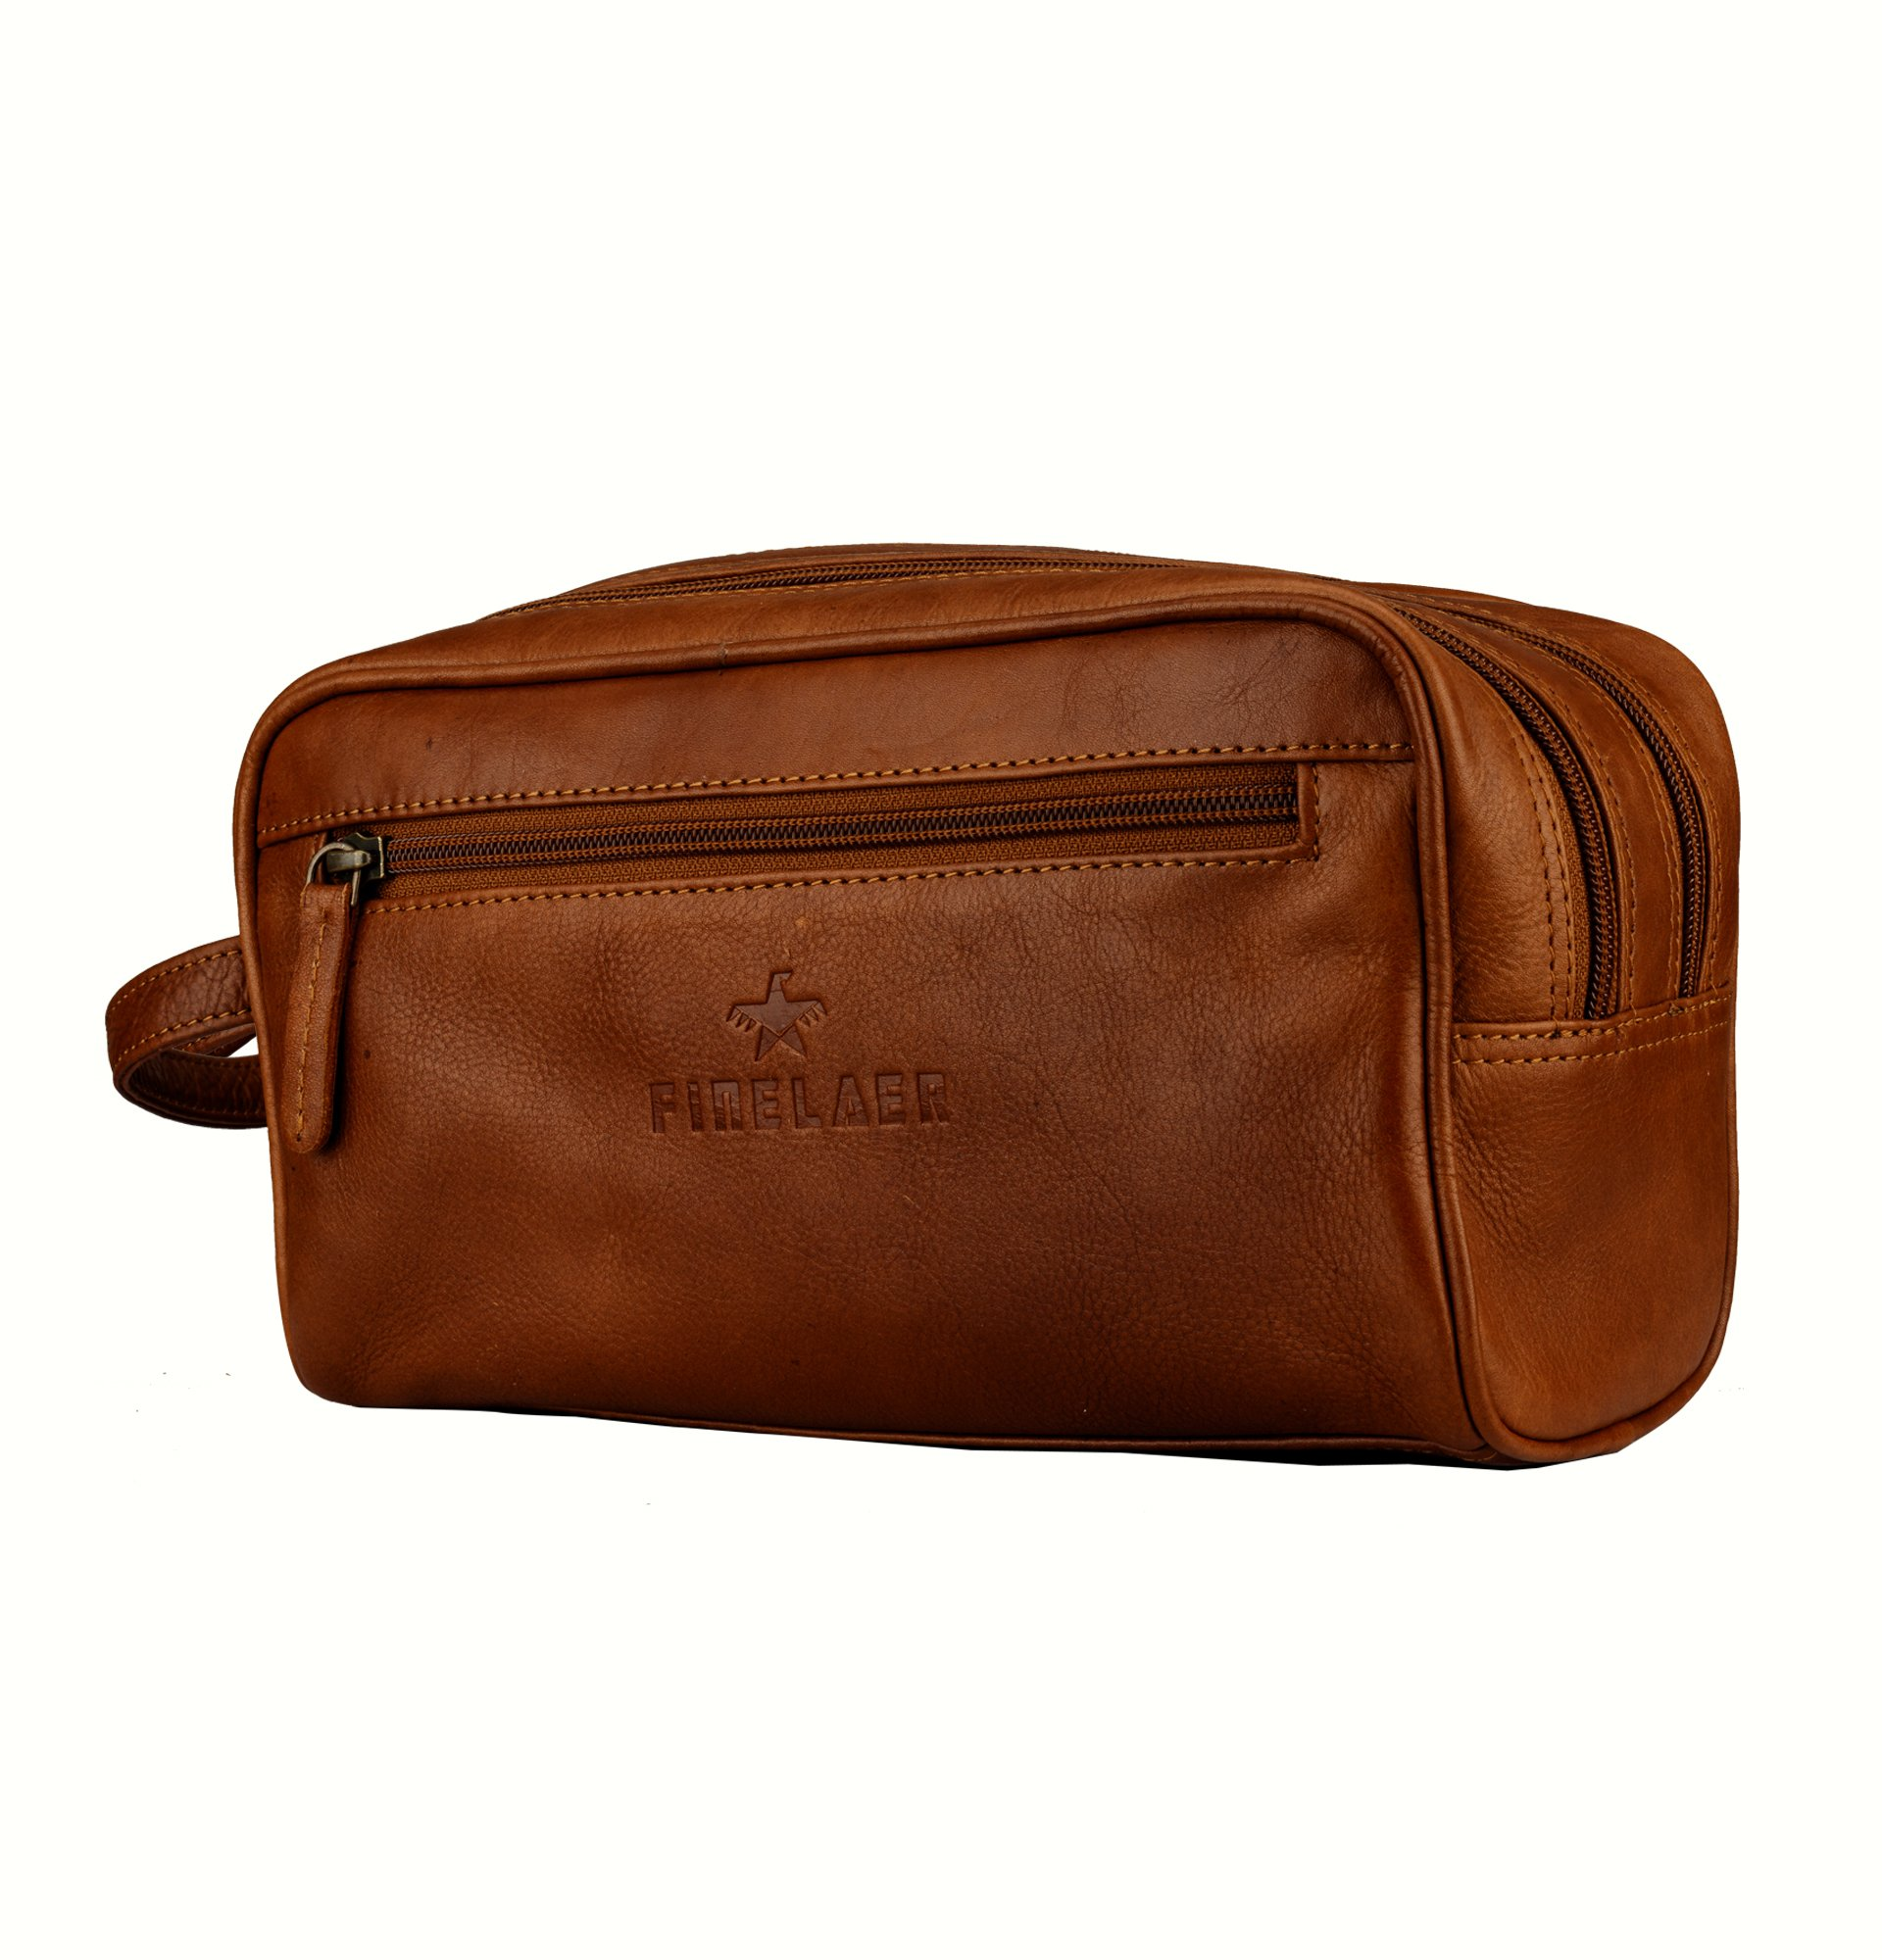 Finelaer Men Brown Leather Toiletry Travel Dopp Bag by FINELAER (Image #3)